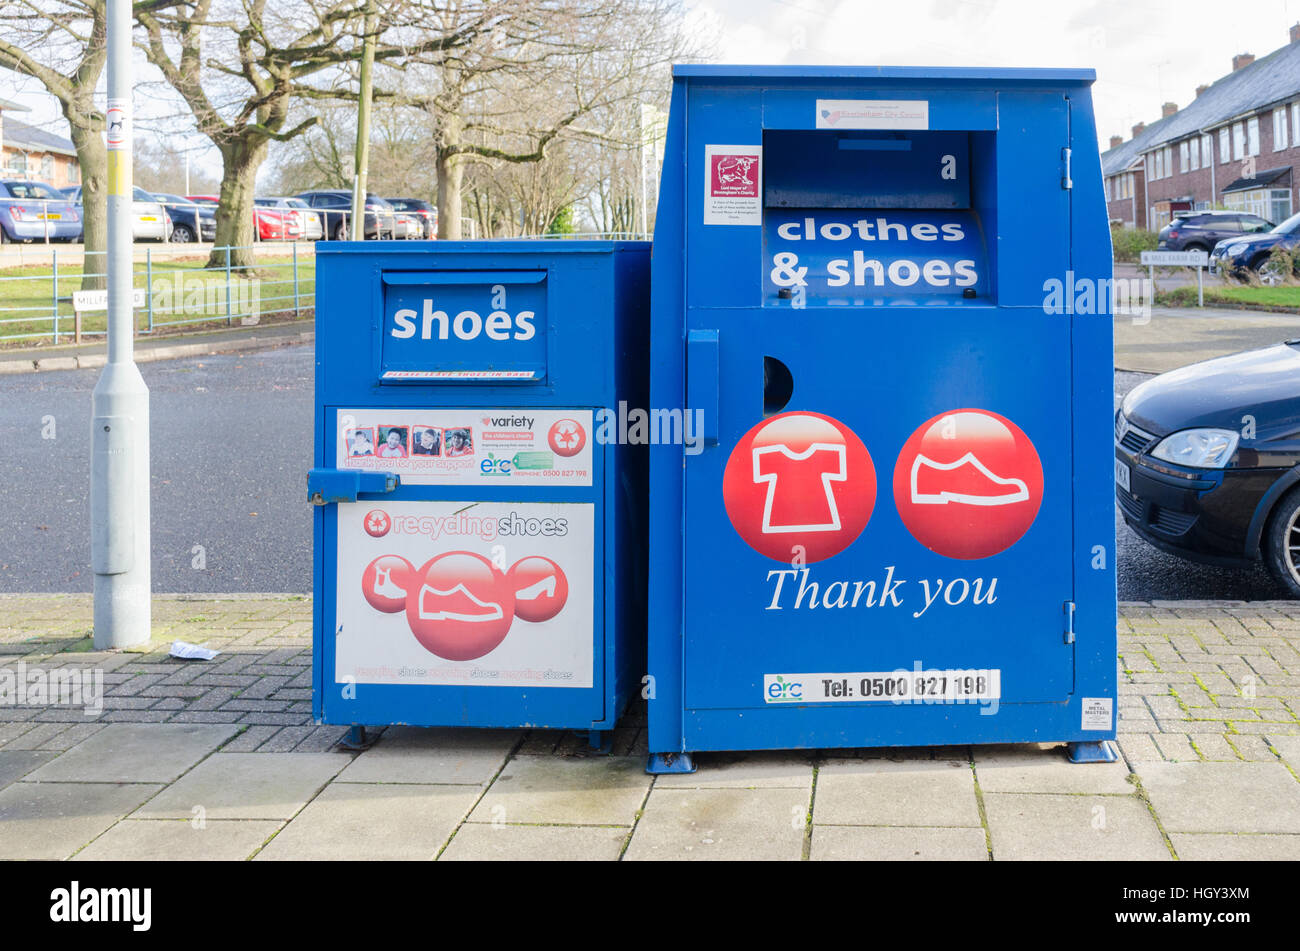 Blue collection bins for clothes and shoes on the pavement - Stock Image